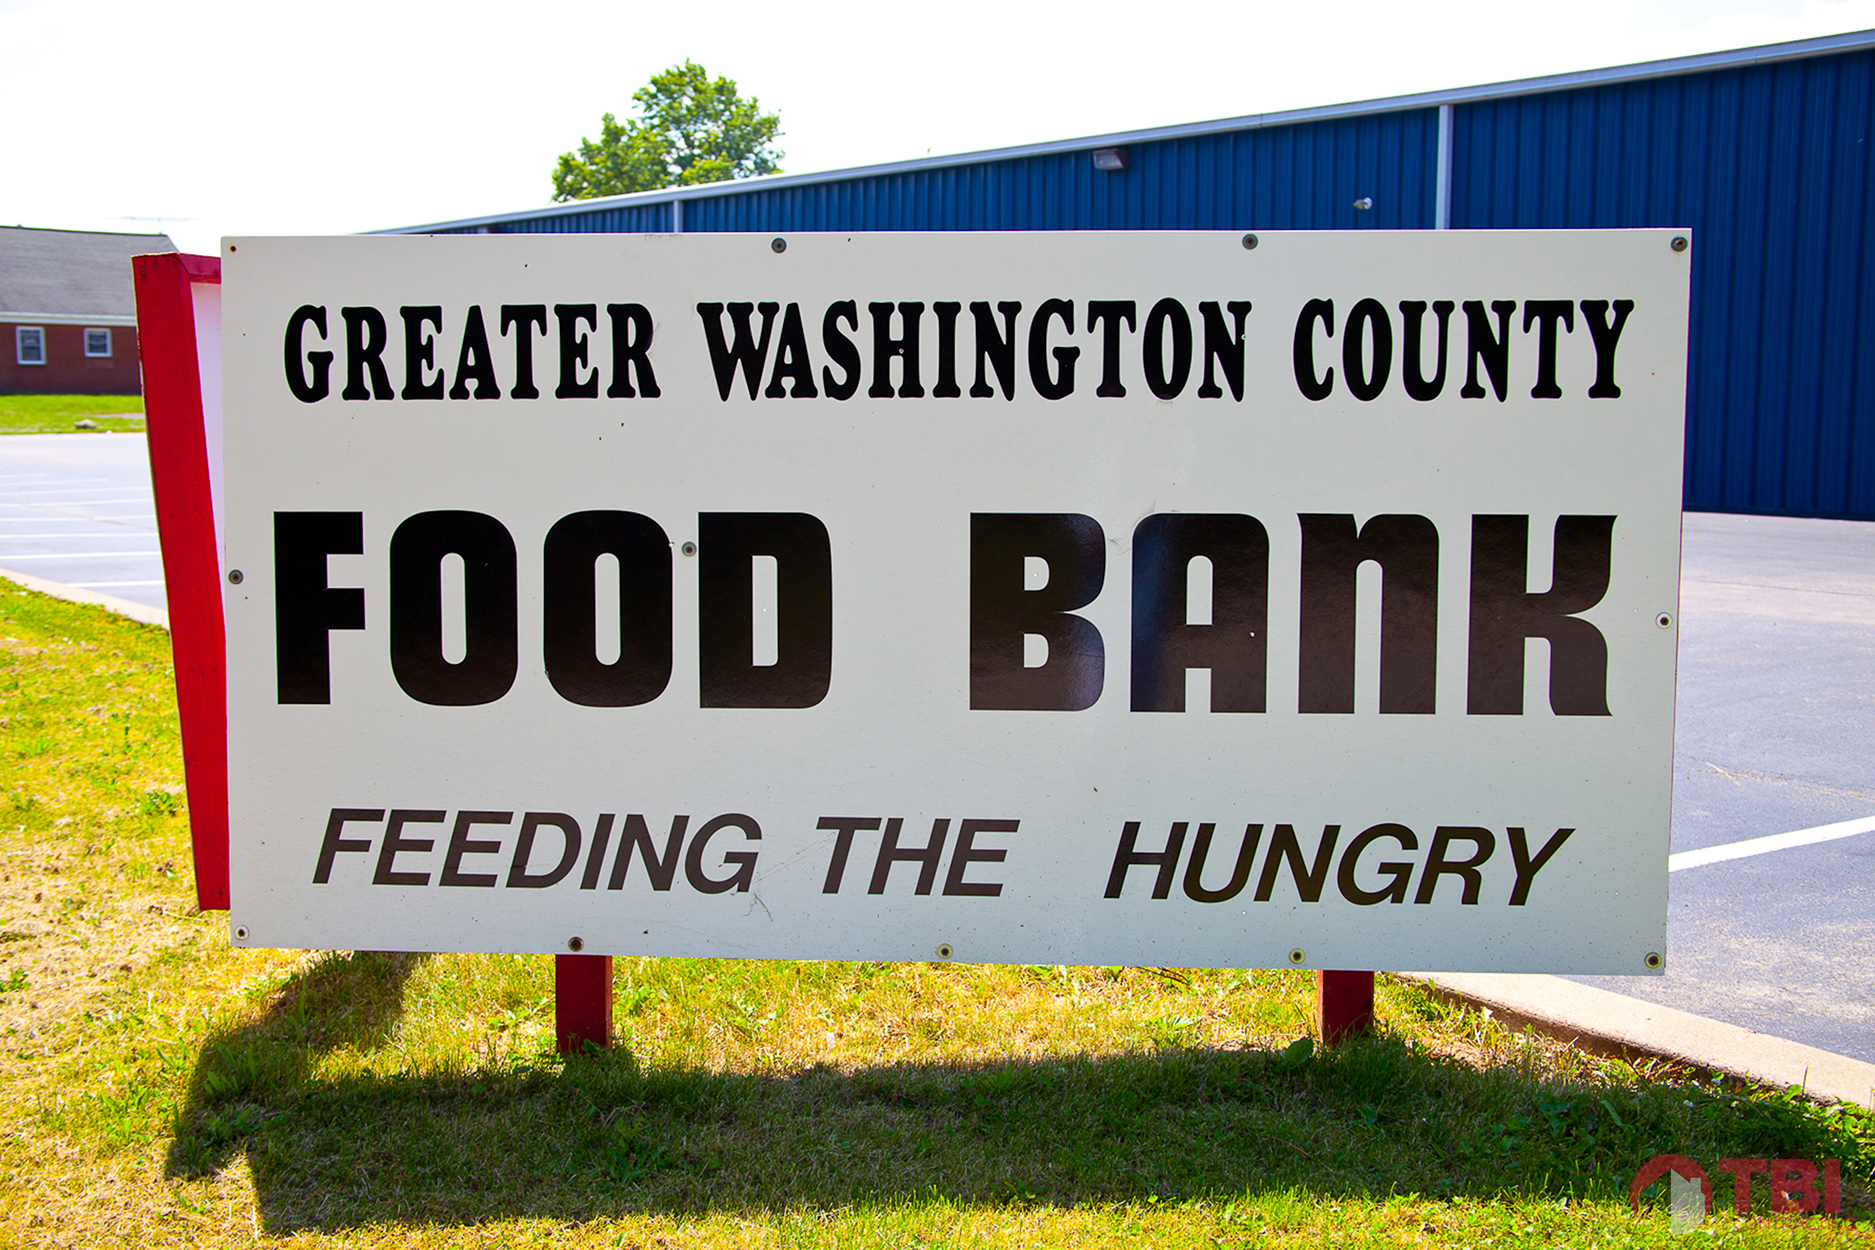 https://i0.wp.com/tbicontracting.com/wp-content/uploads/2015/04/washington-county-food-bank-building-6.jpg?fit=1875%2C1250&ssl=1